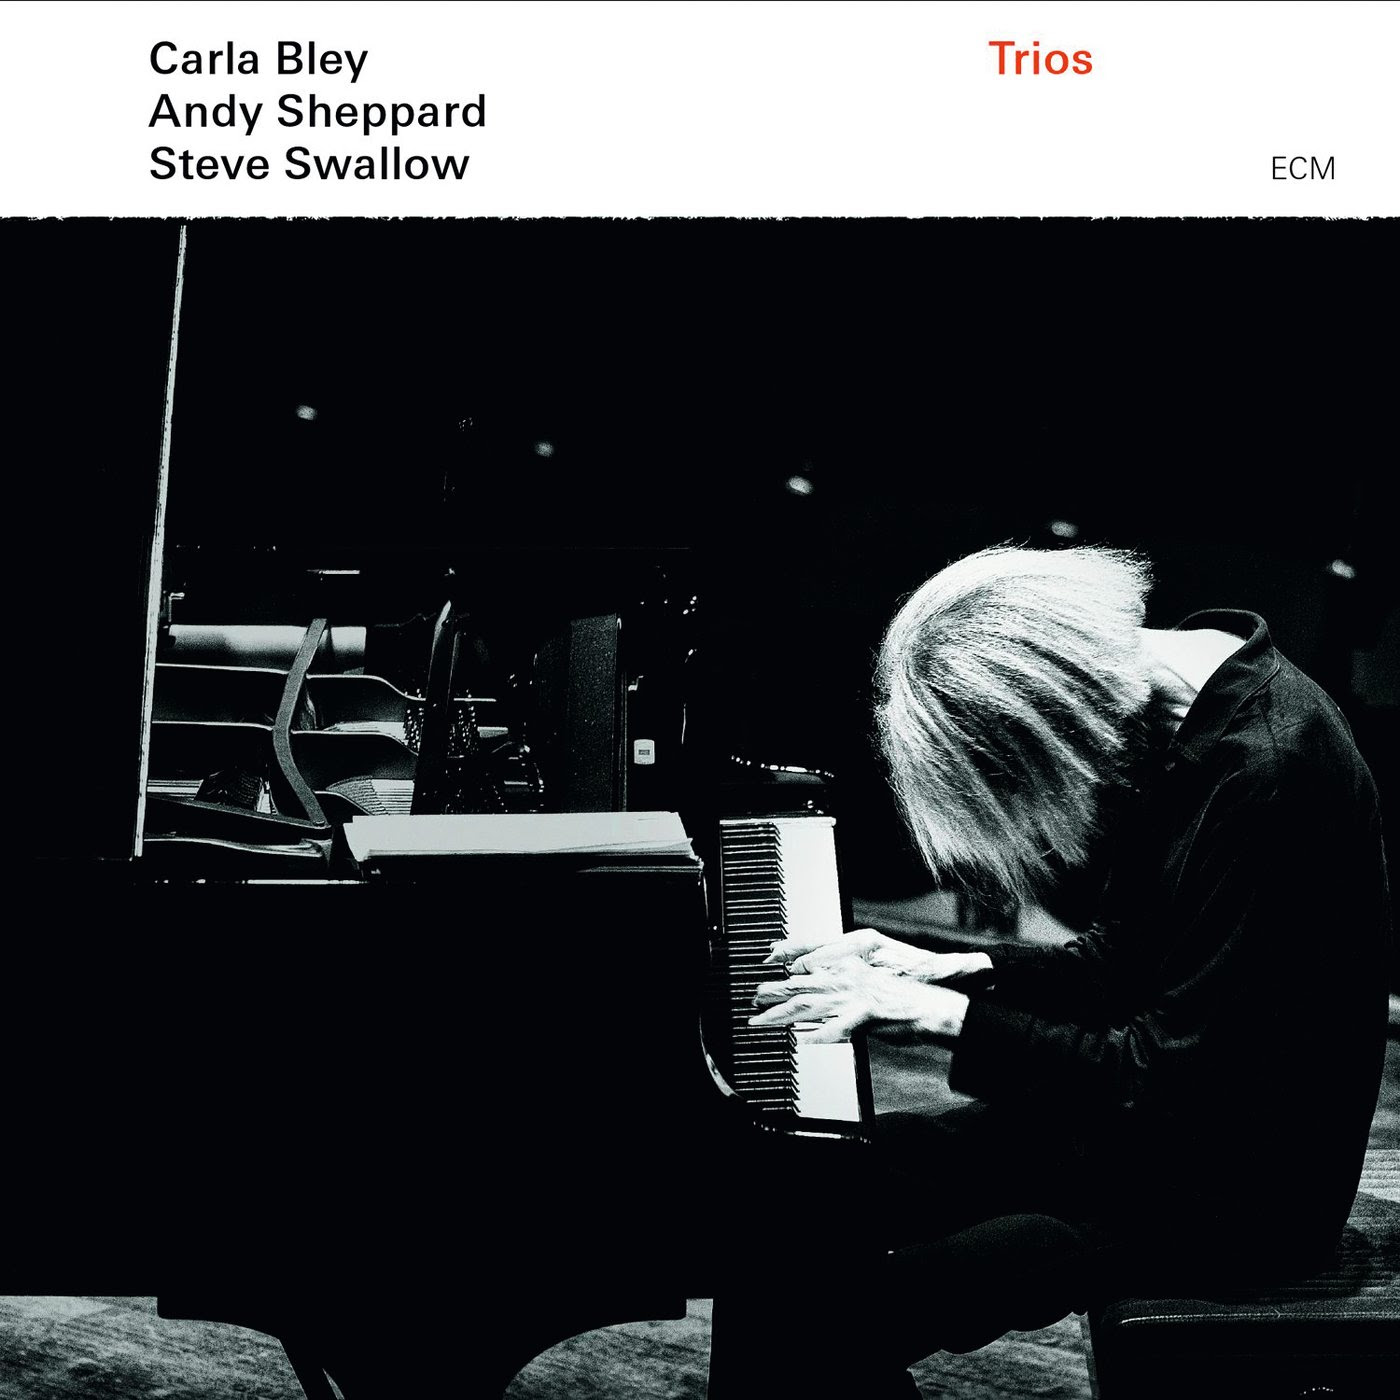 Carla Bley, Andy Sheppard, Steve Swallow - Trios cover